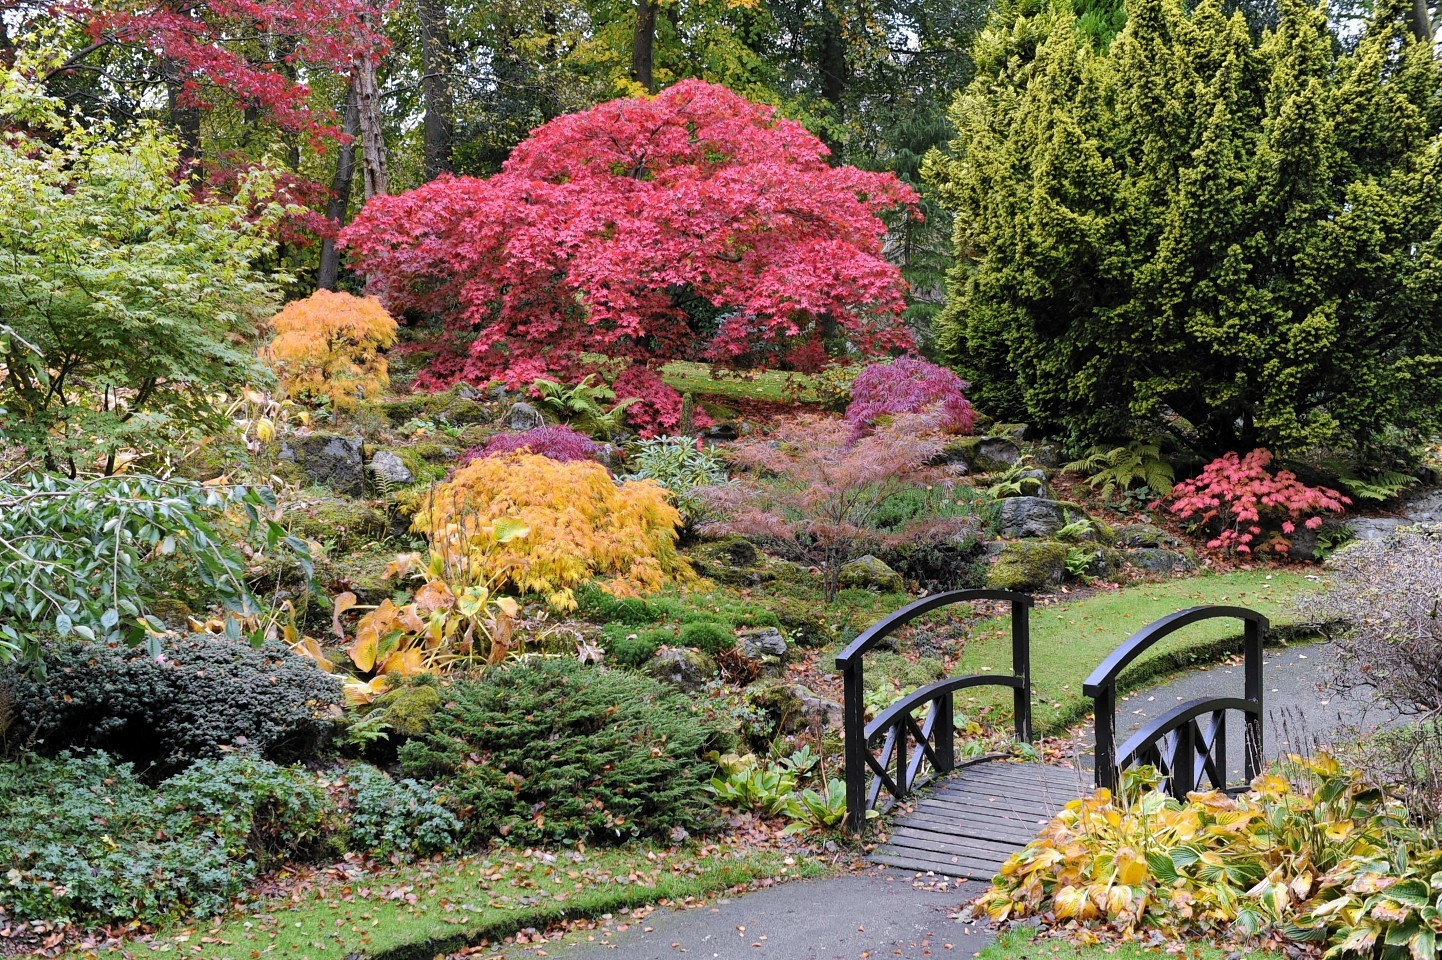 Aberdeen's parks and gardens bagged top prize at the Britain in Bloom